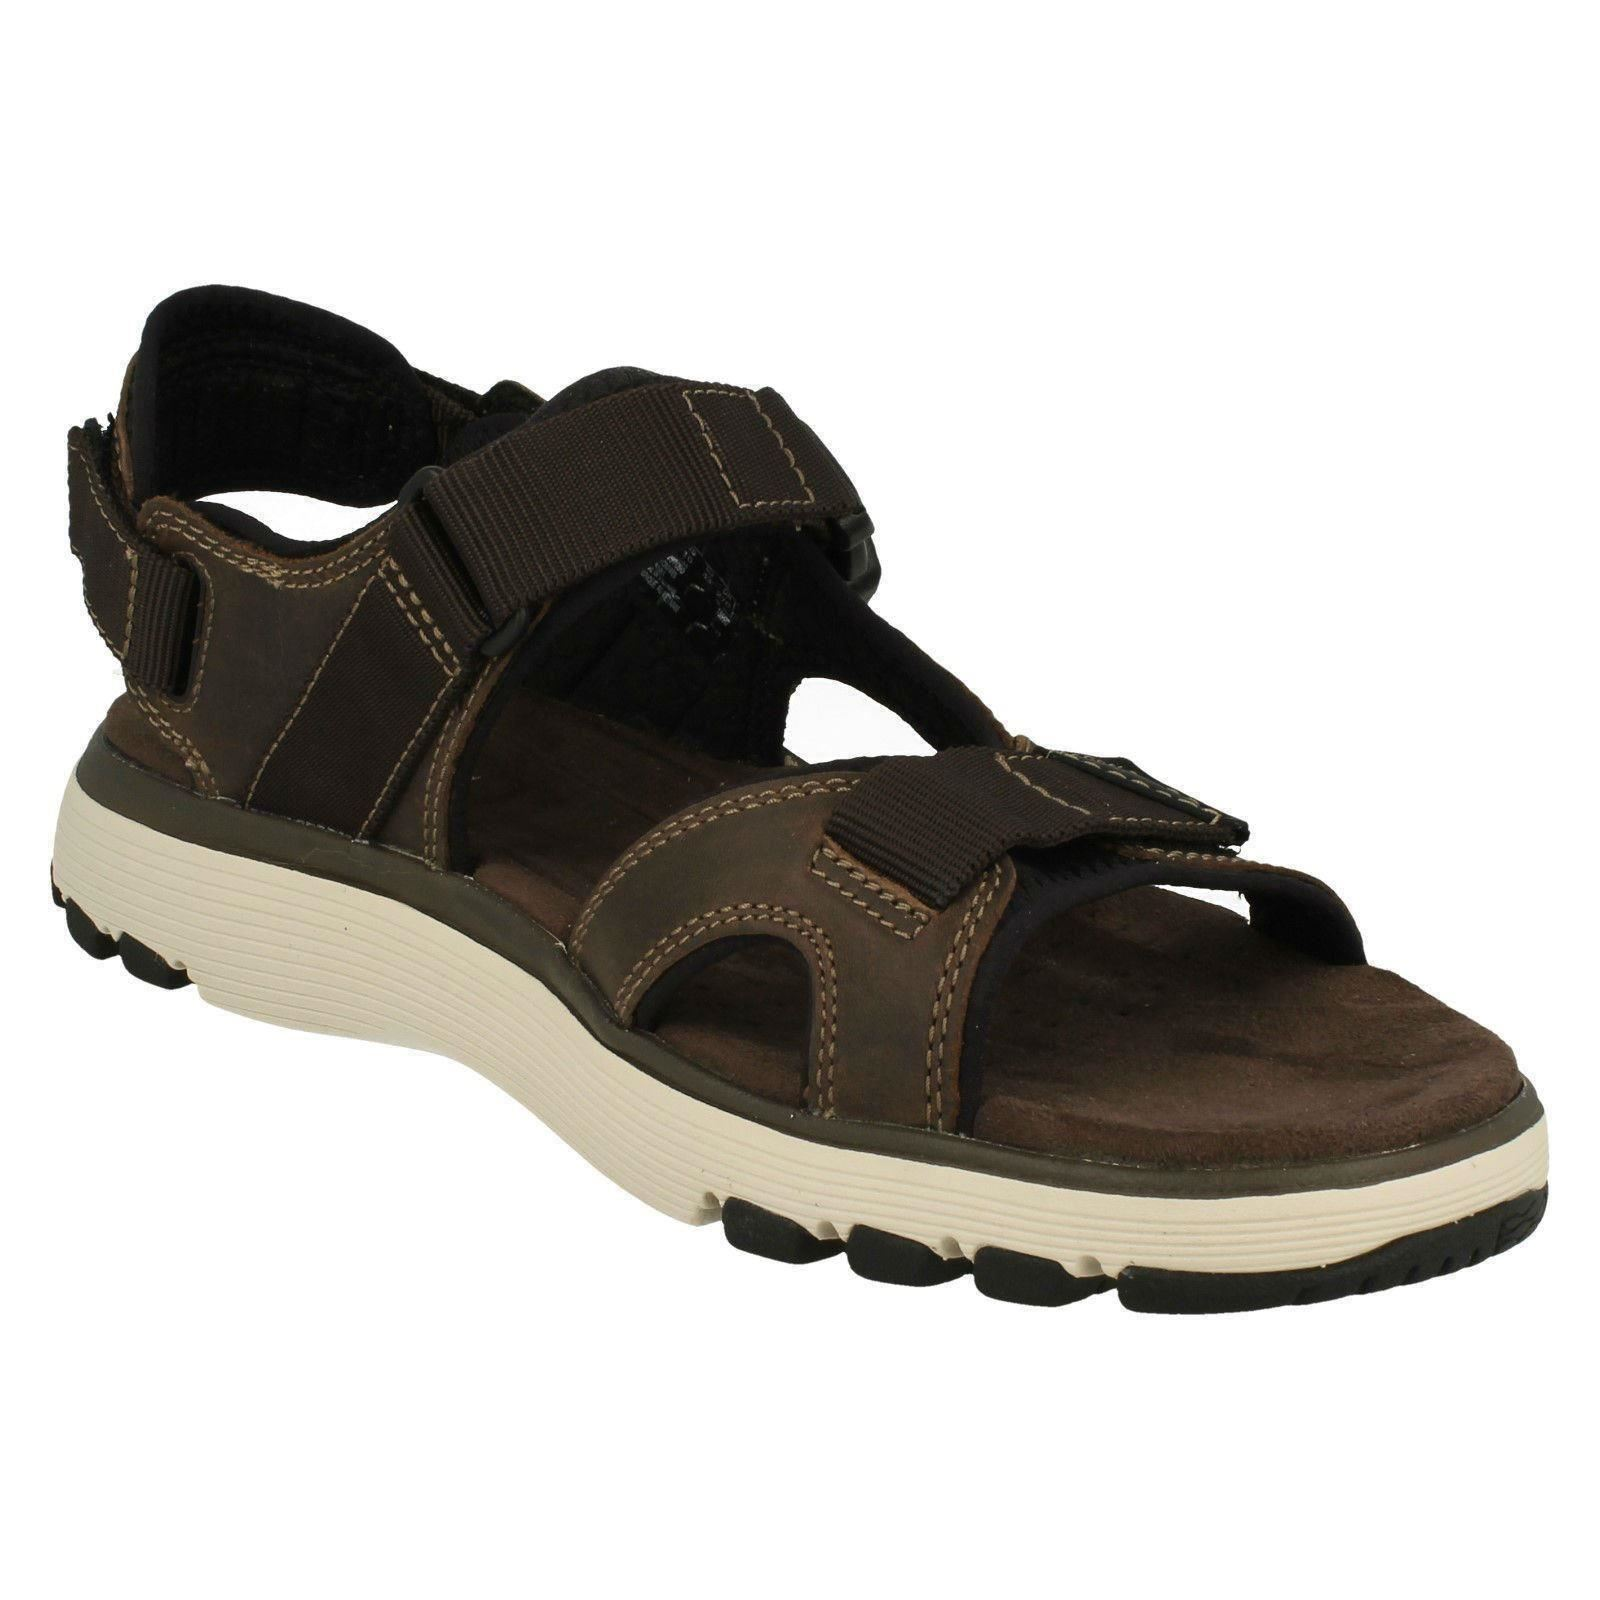 Men's Unstructured by Label Clarks Casual Strapped Sandals Label by - Un Trek Bar 1d0985